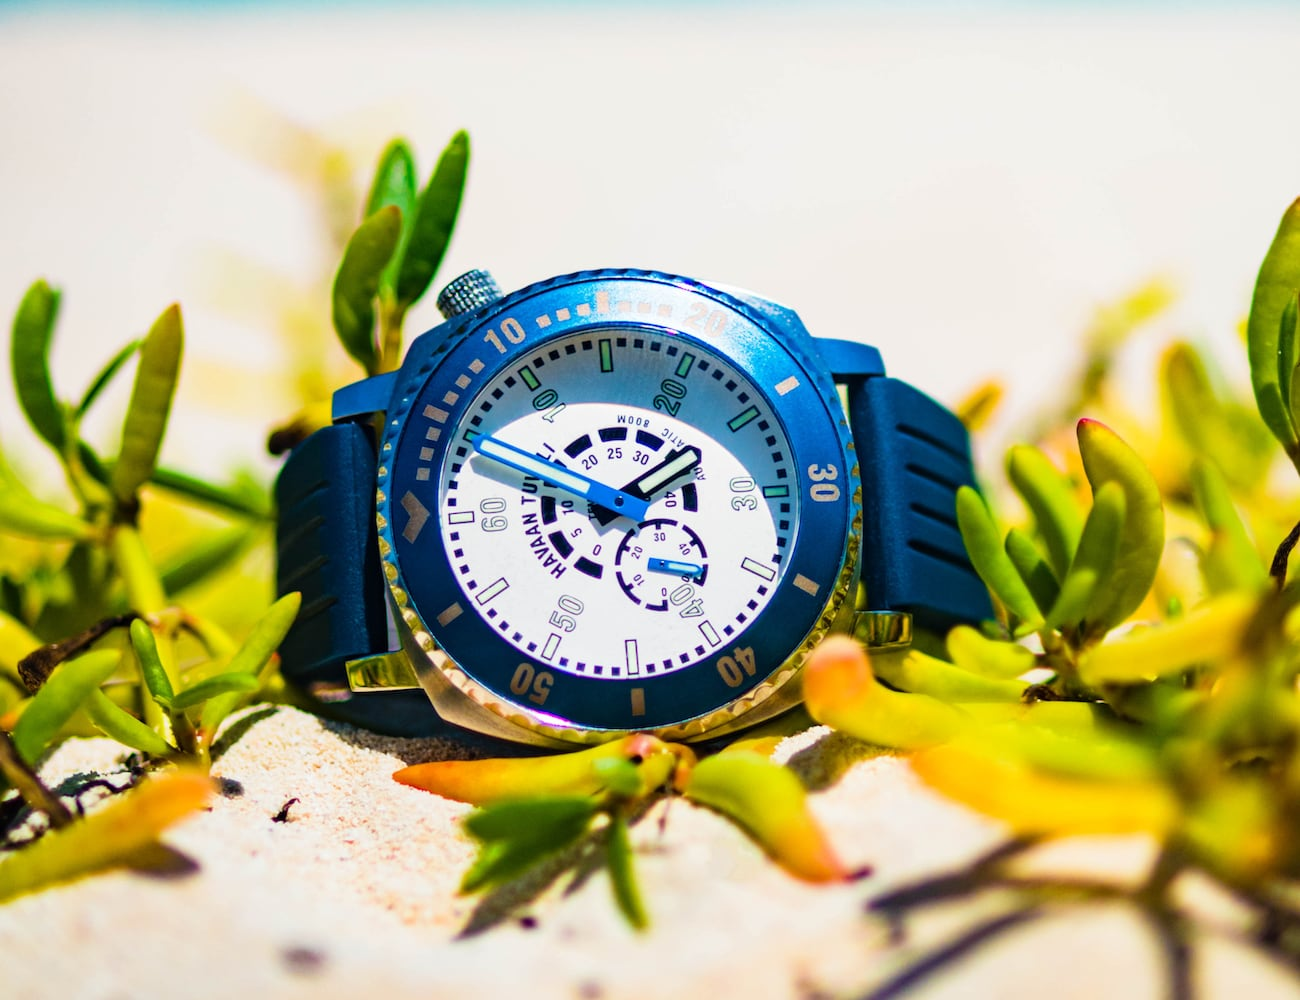 Havaan Code Zero-6 Limited Edition Diving Watch